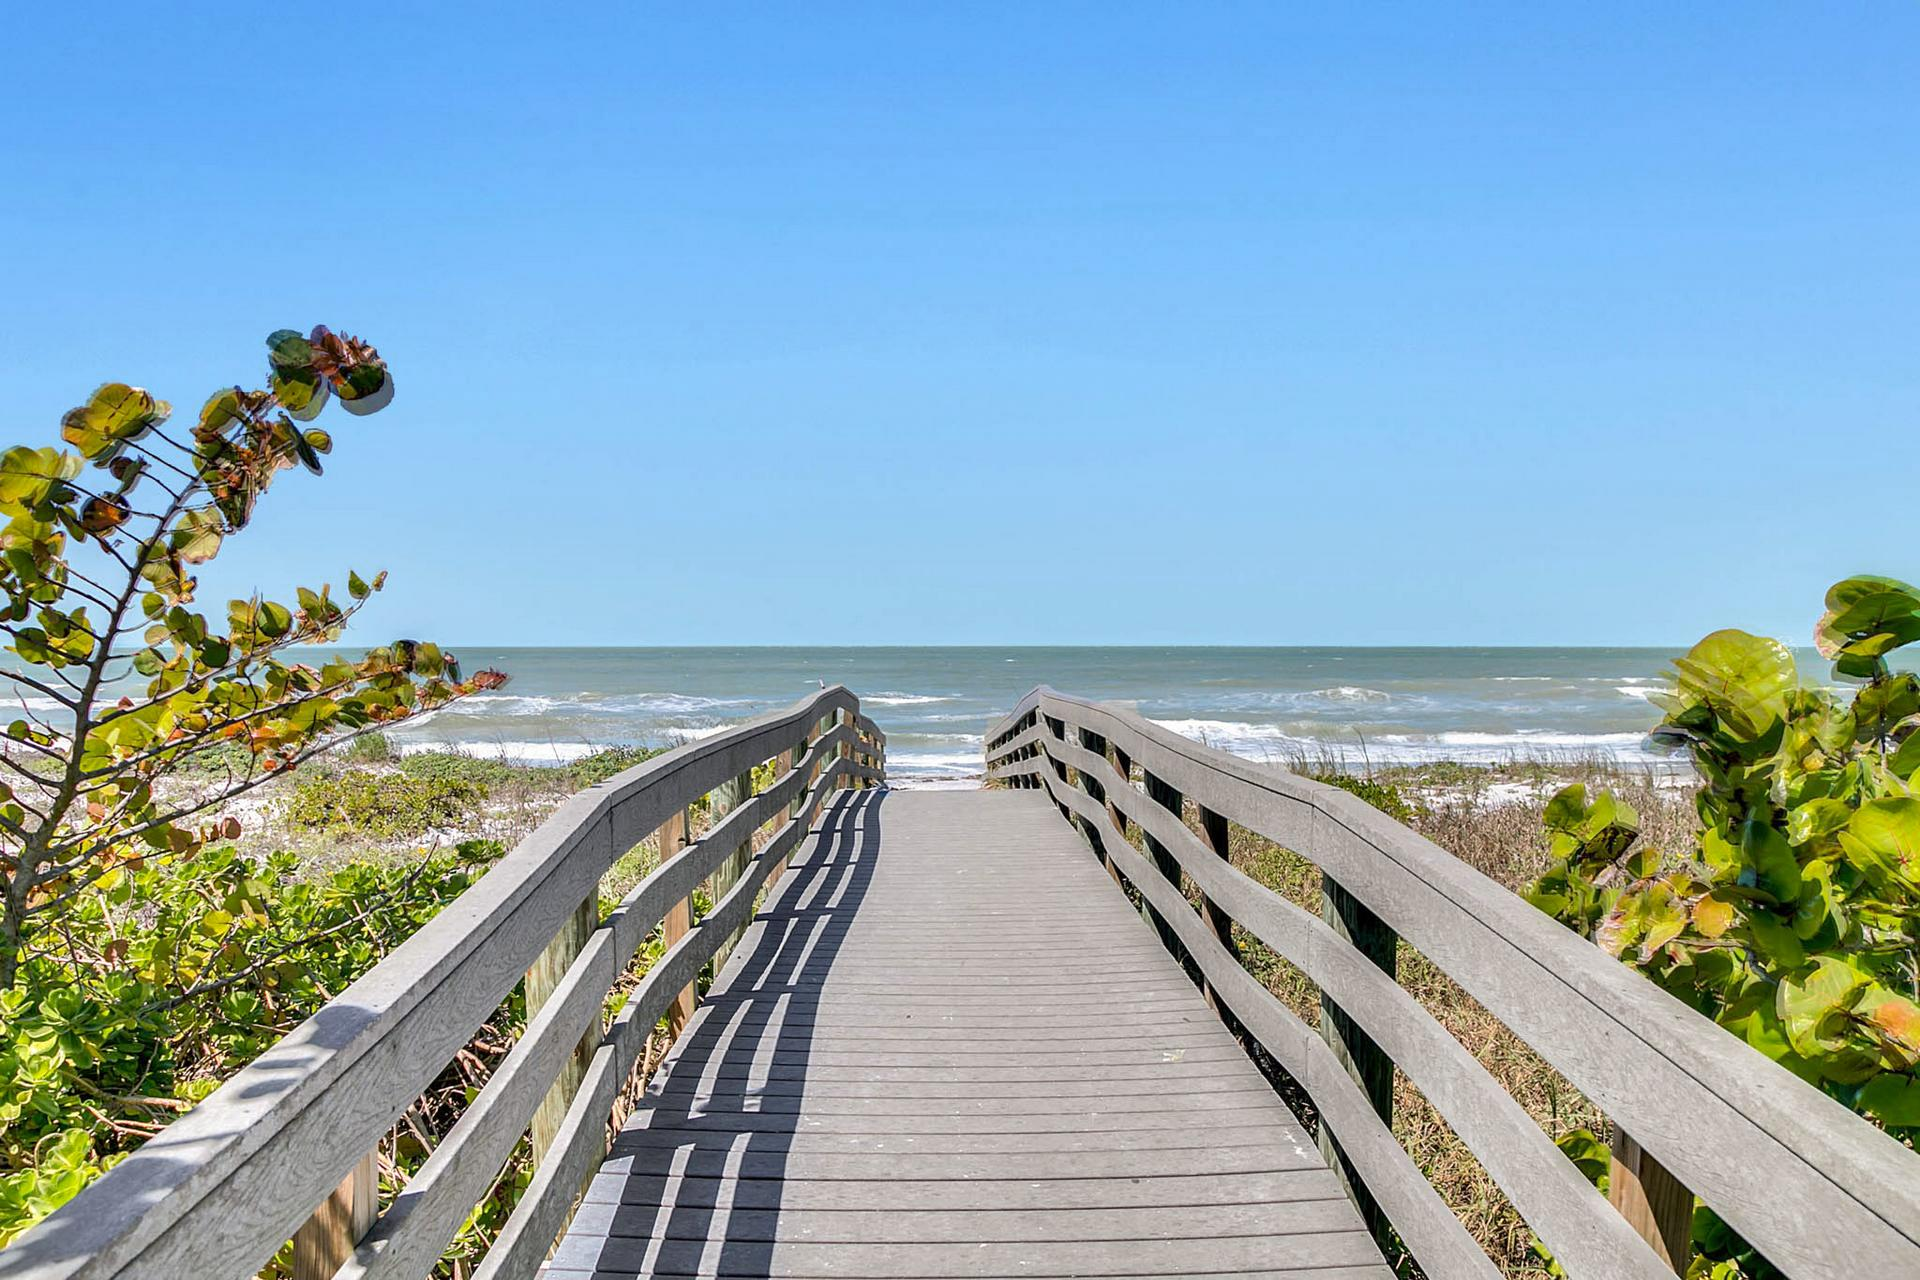 Easily access the beach with convenient walkways.